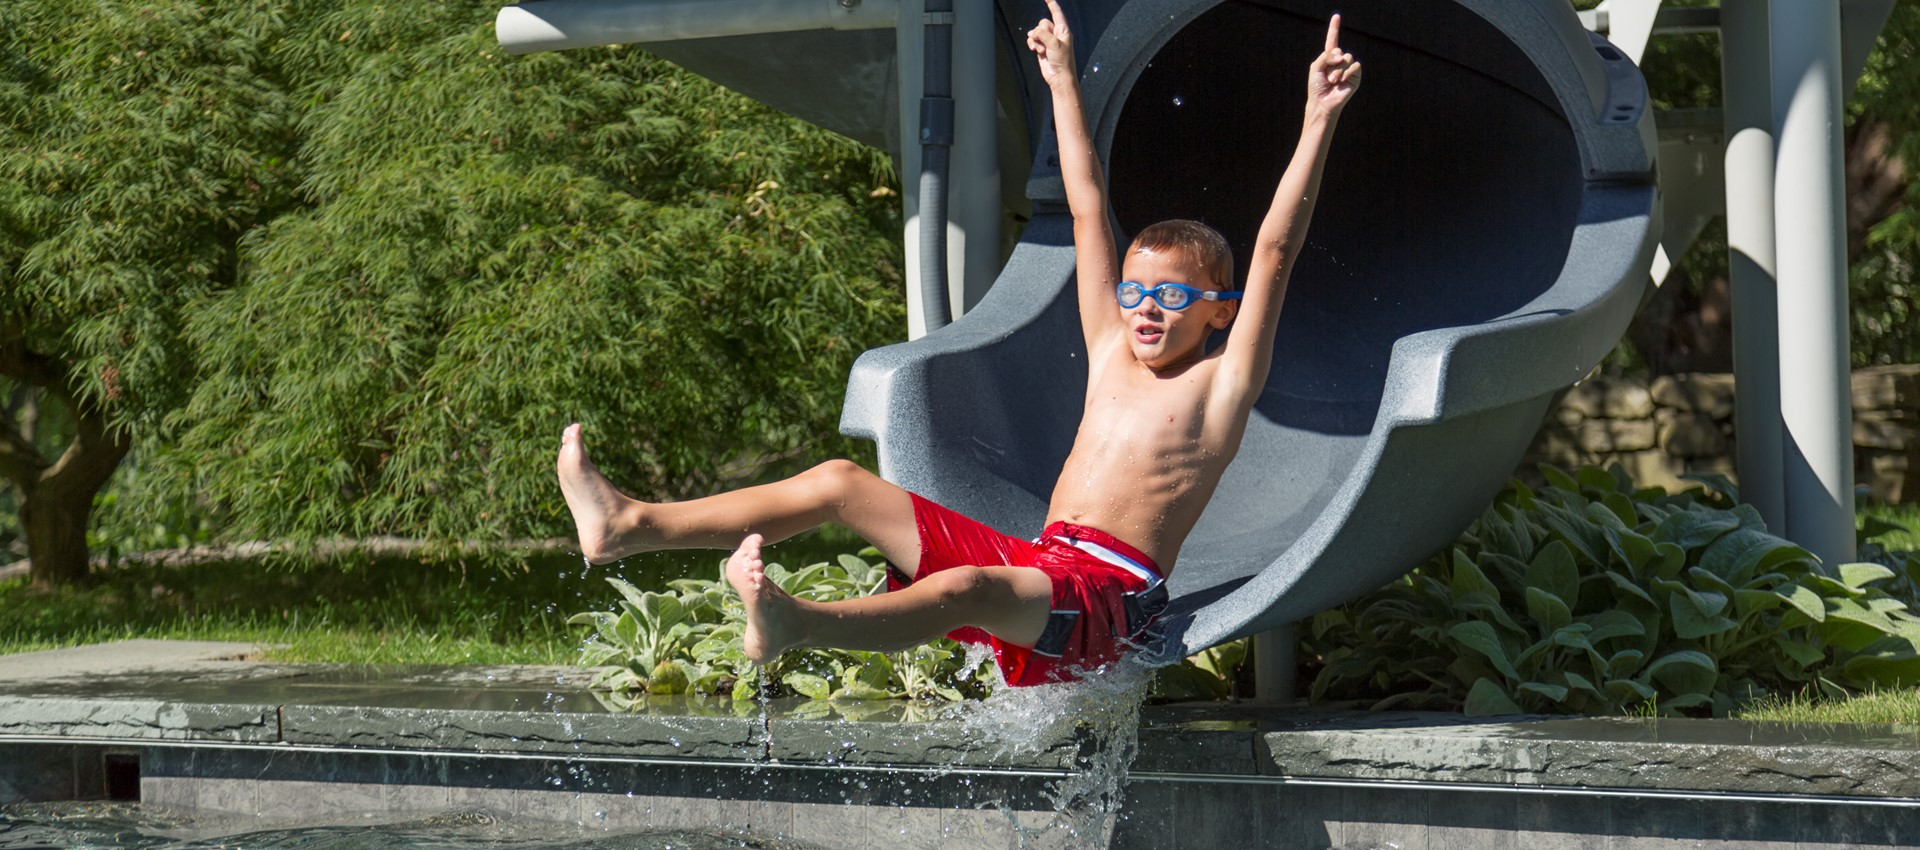 A young boys comes down a slide into his backyard pool.